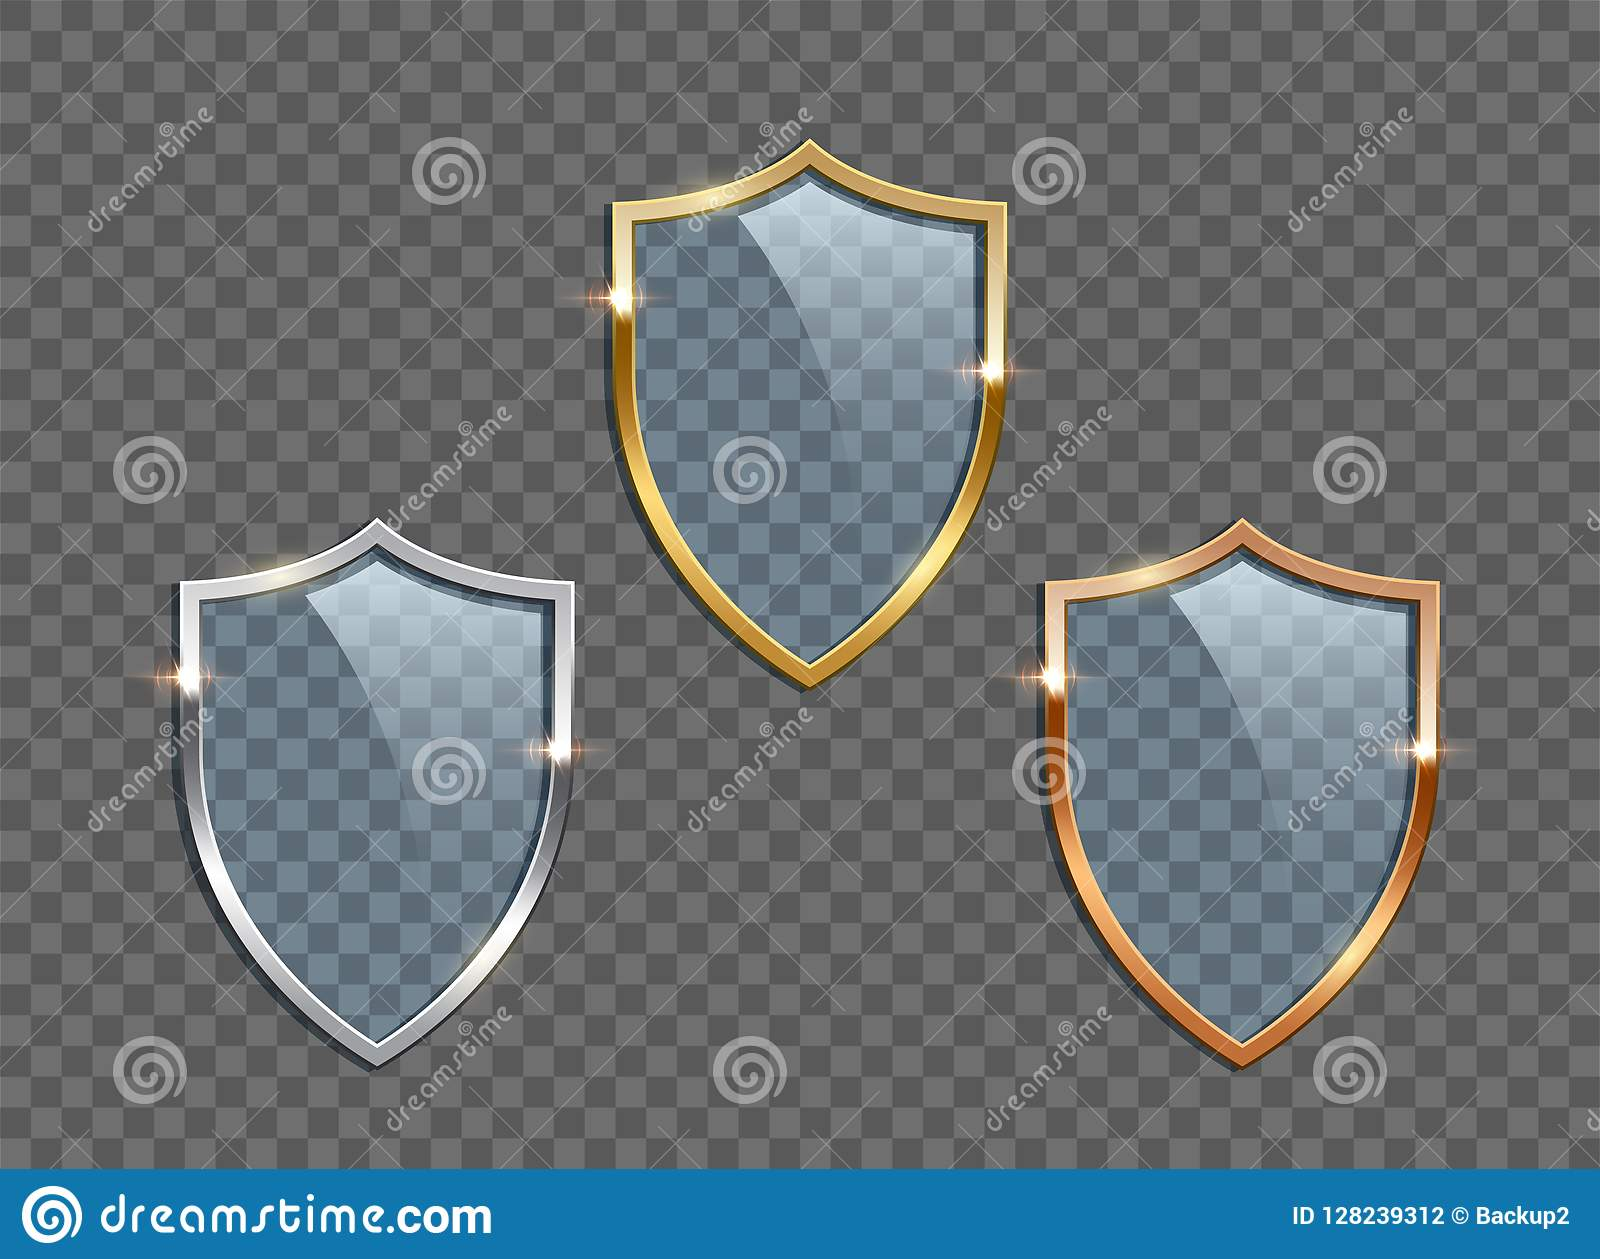 Glass shields with golden, silver and bronze frames isolated on transparent background. Vector design elements.